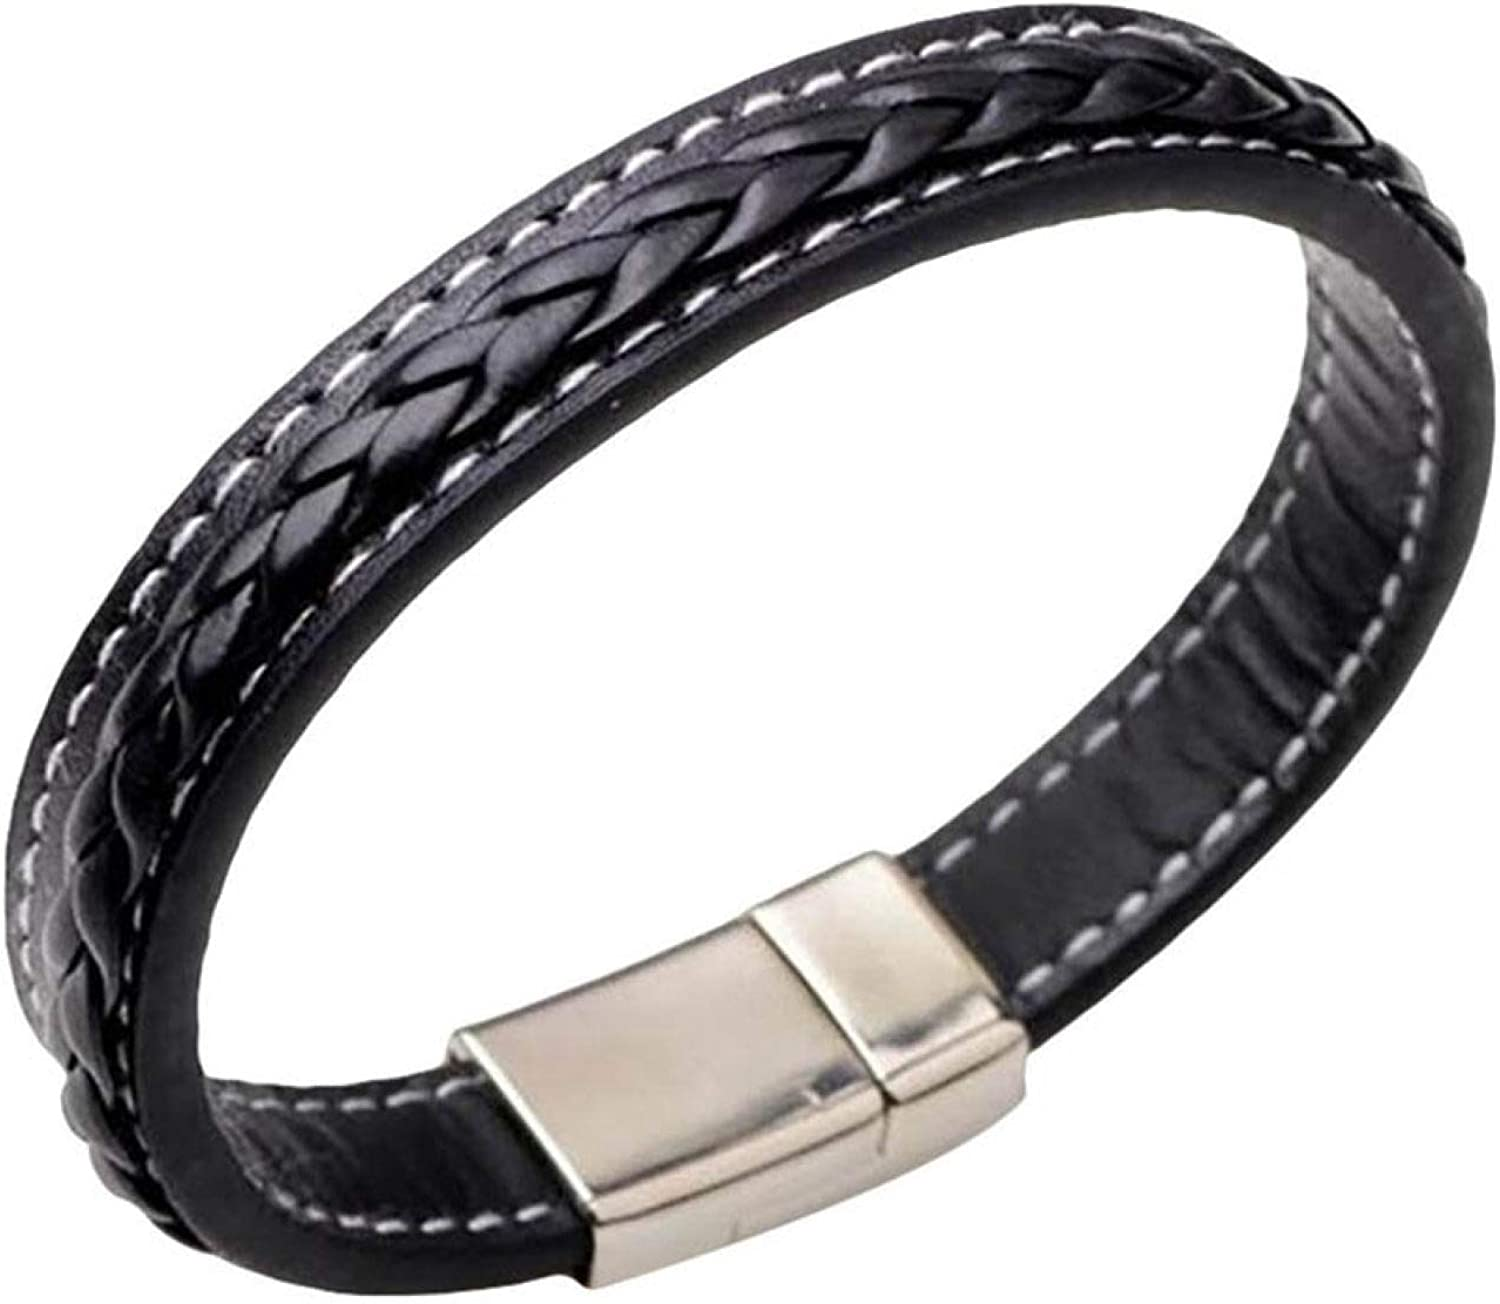 Fashion Solid Color Braided Magnetic Super Special SALE held Max 79% OFF Bracelet Buckle Clasp Cuff